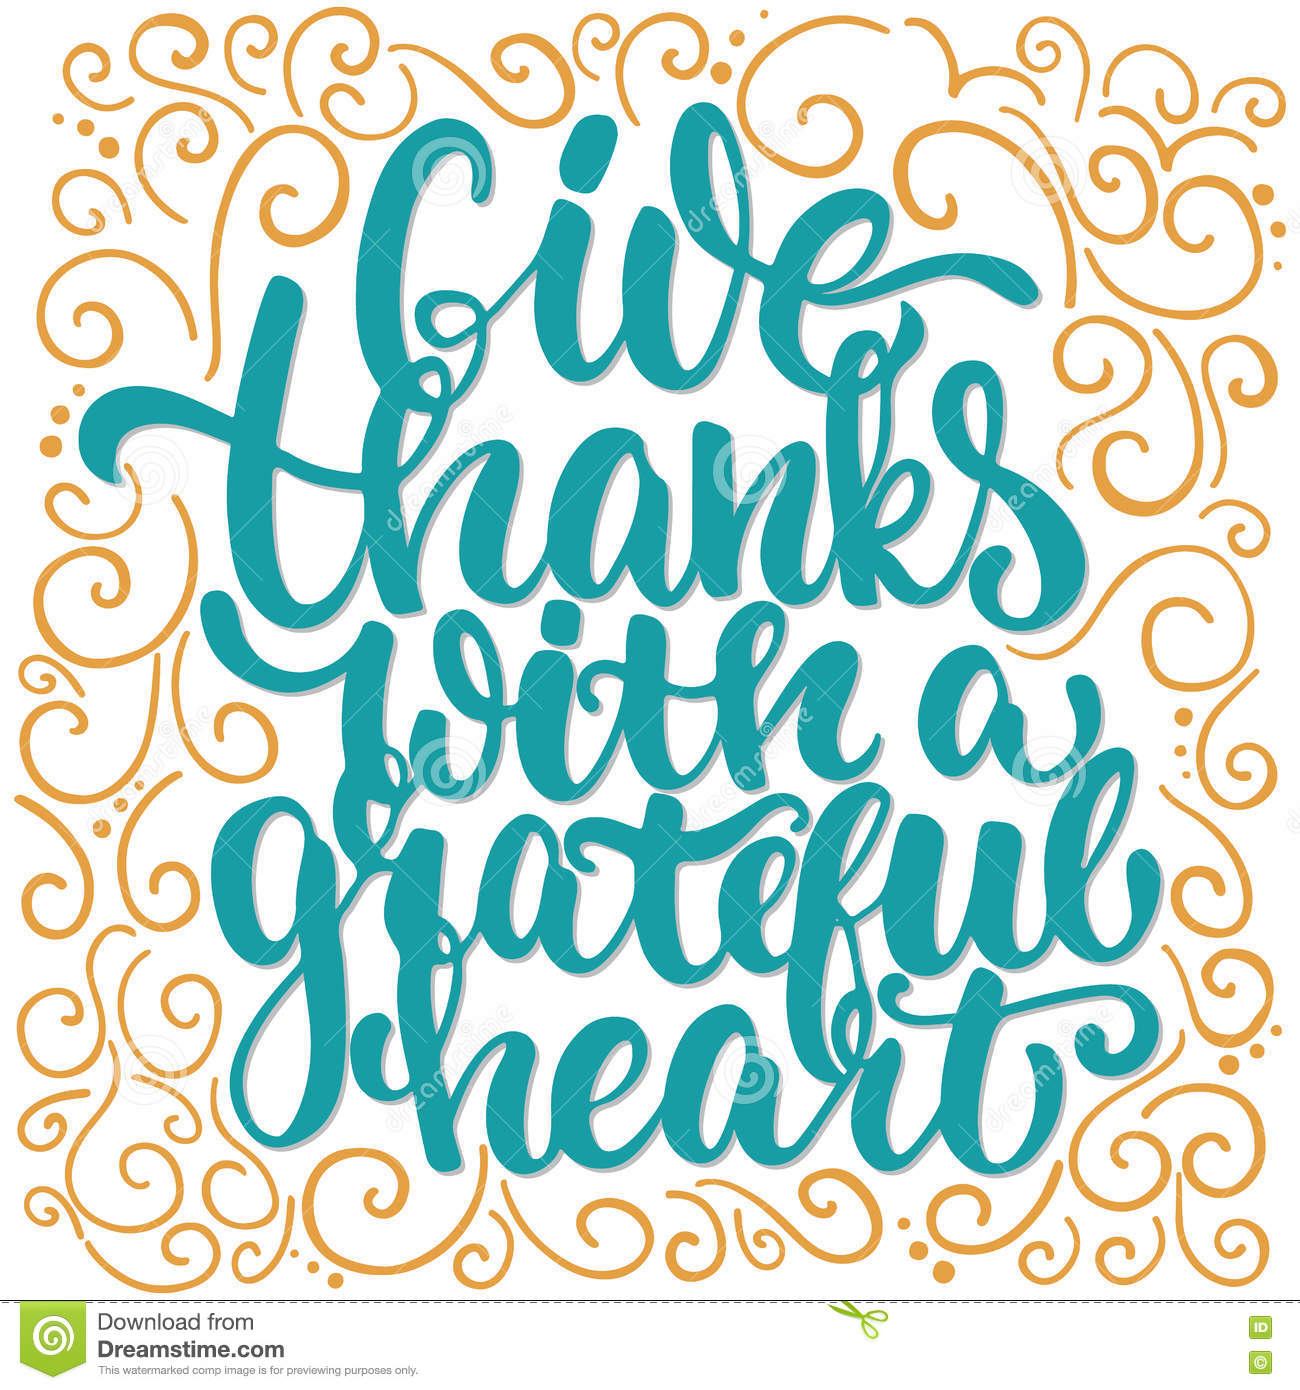 Give Thanks With A Greatful Heart - Thanksgiving Day Lettering ...